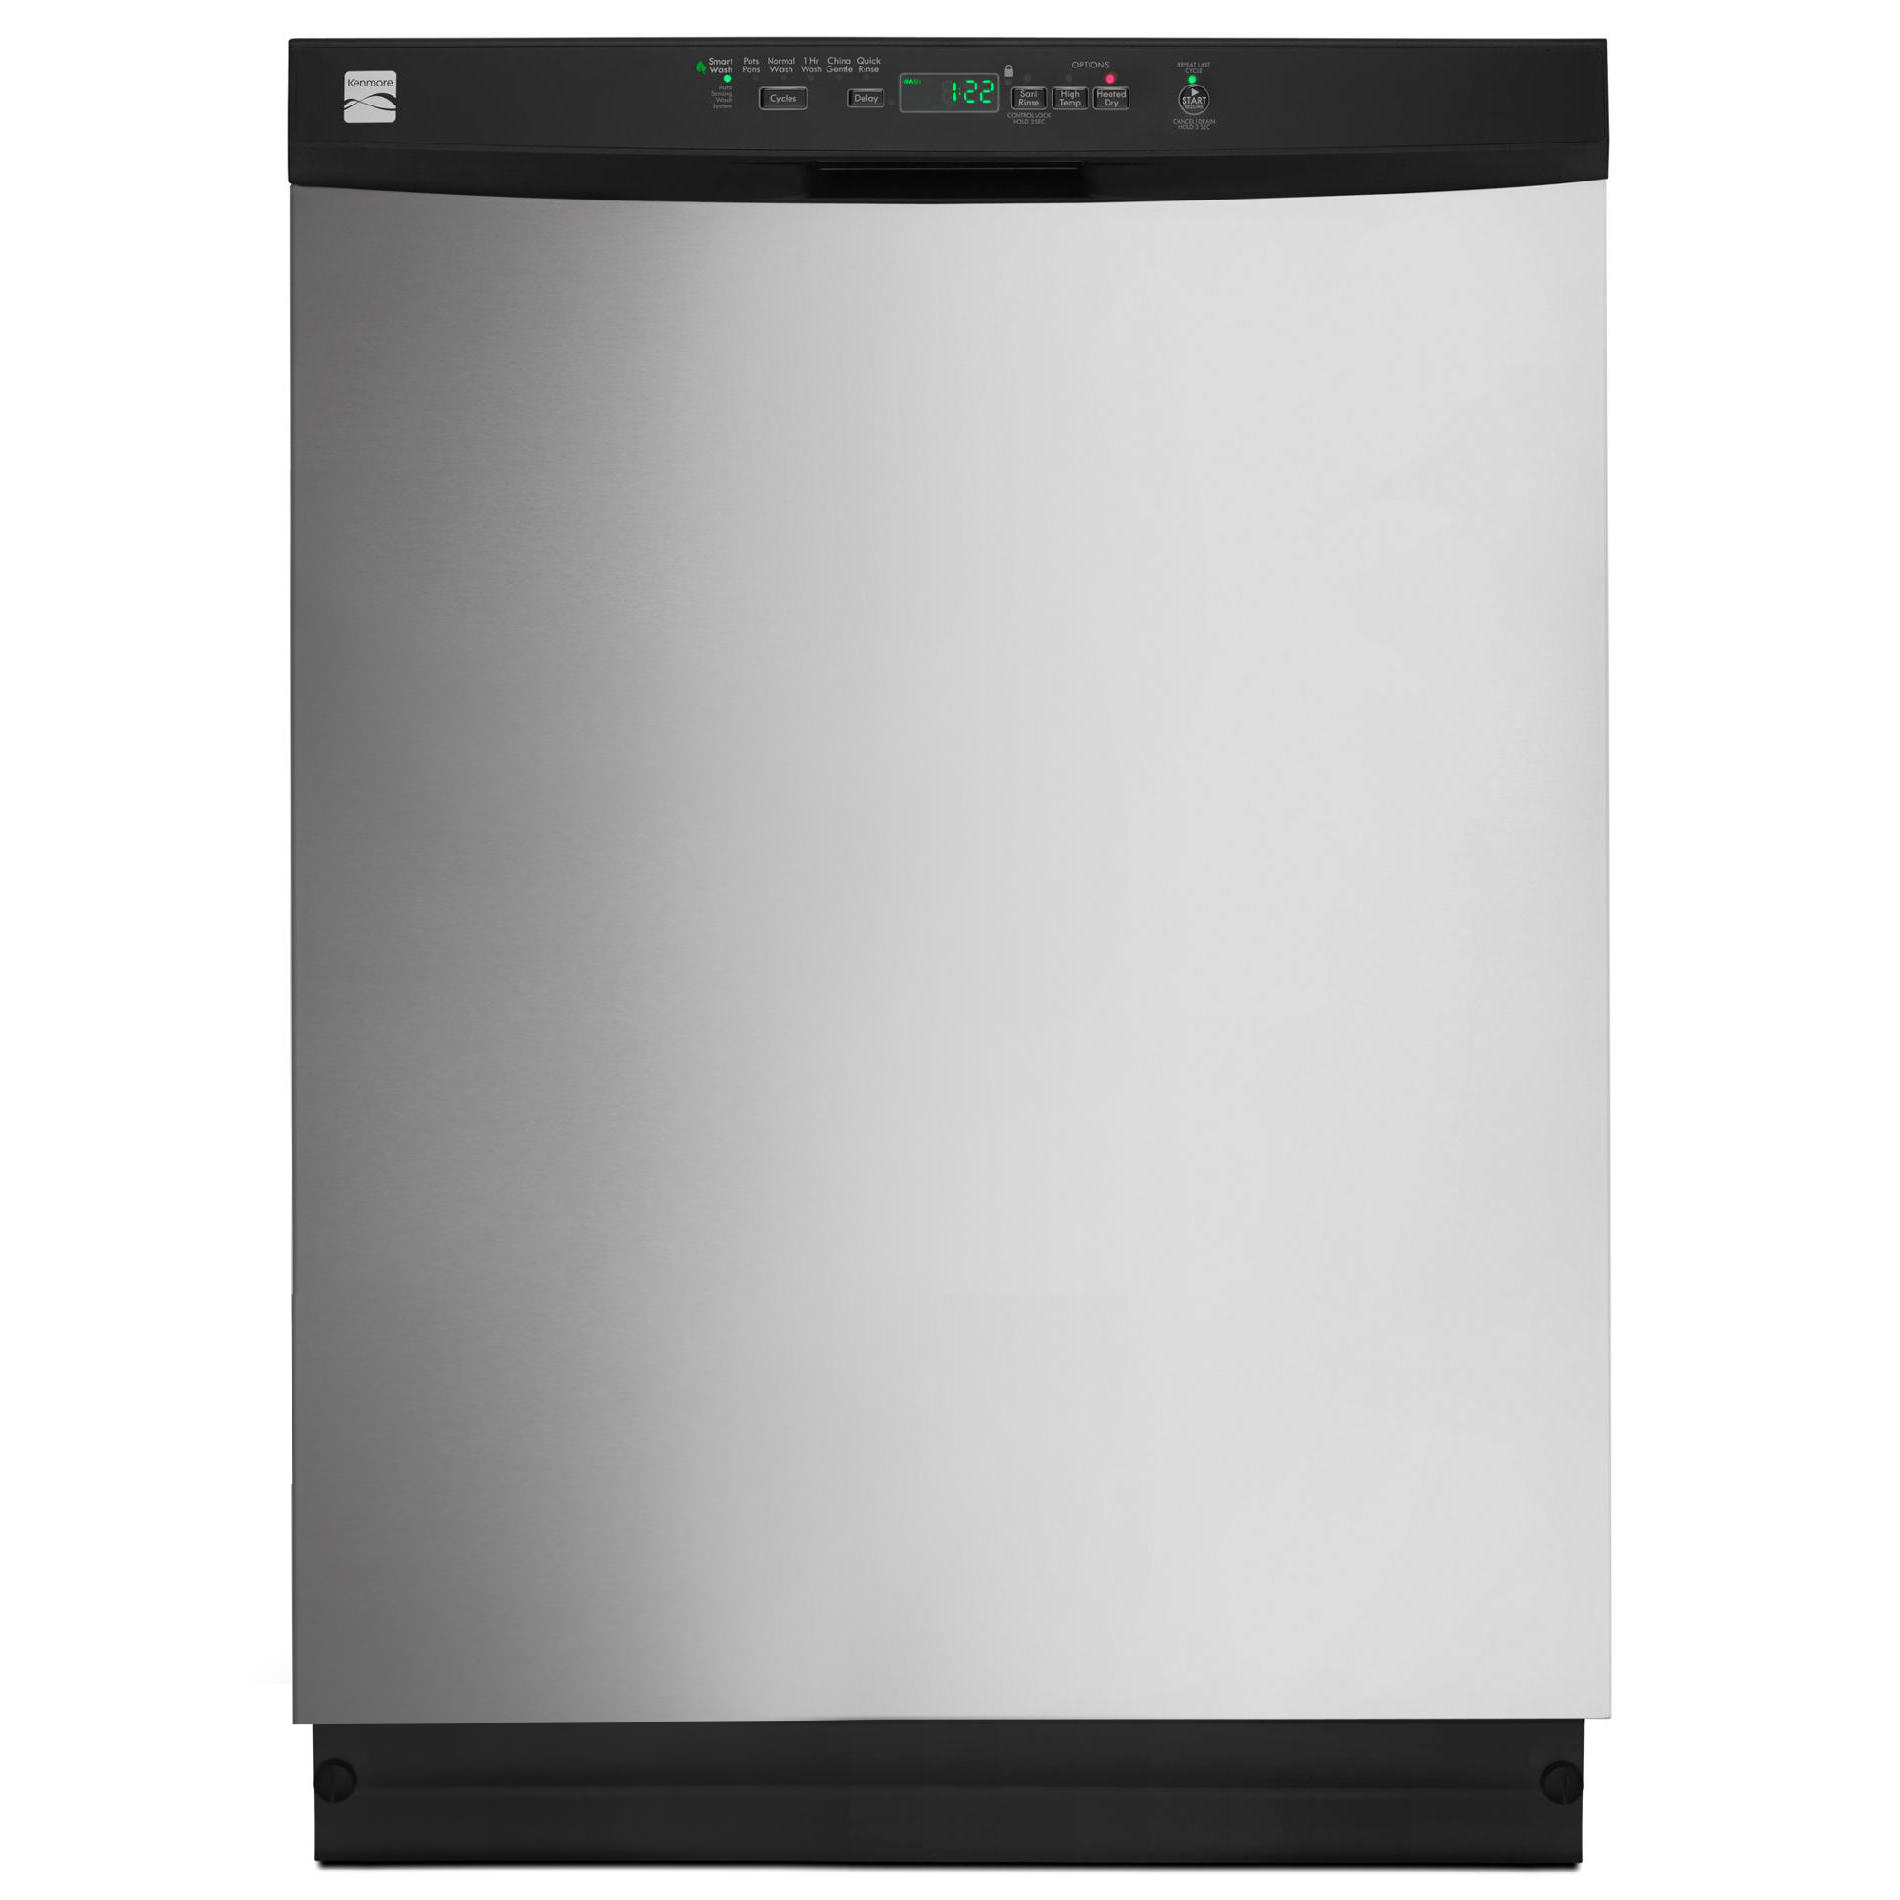 Kenmore 13223 24 Built-In Dishwasher w/ PowerWave™ Spray Arm - Stainless Steel